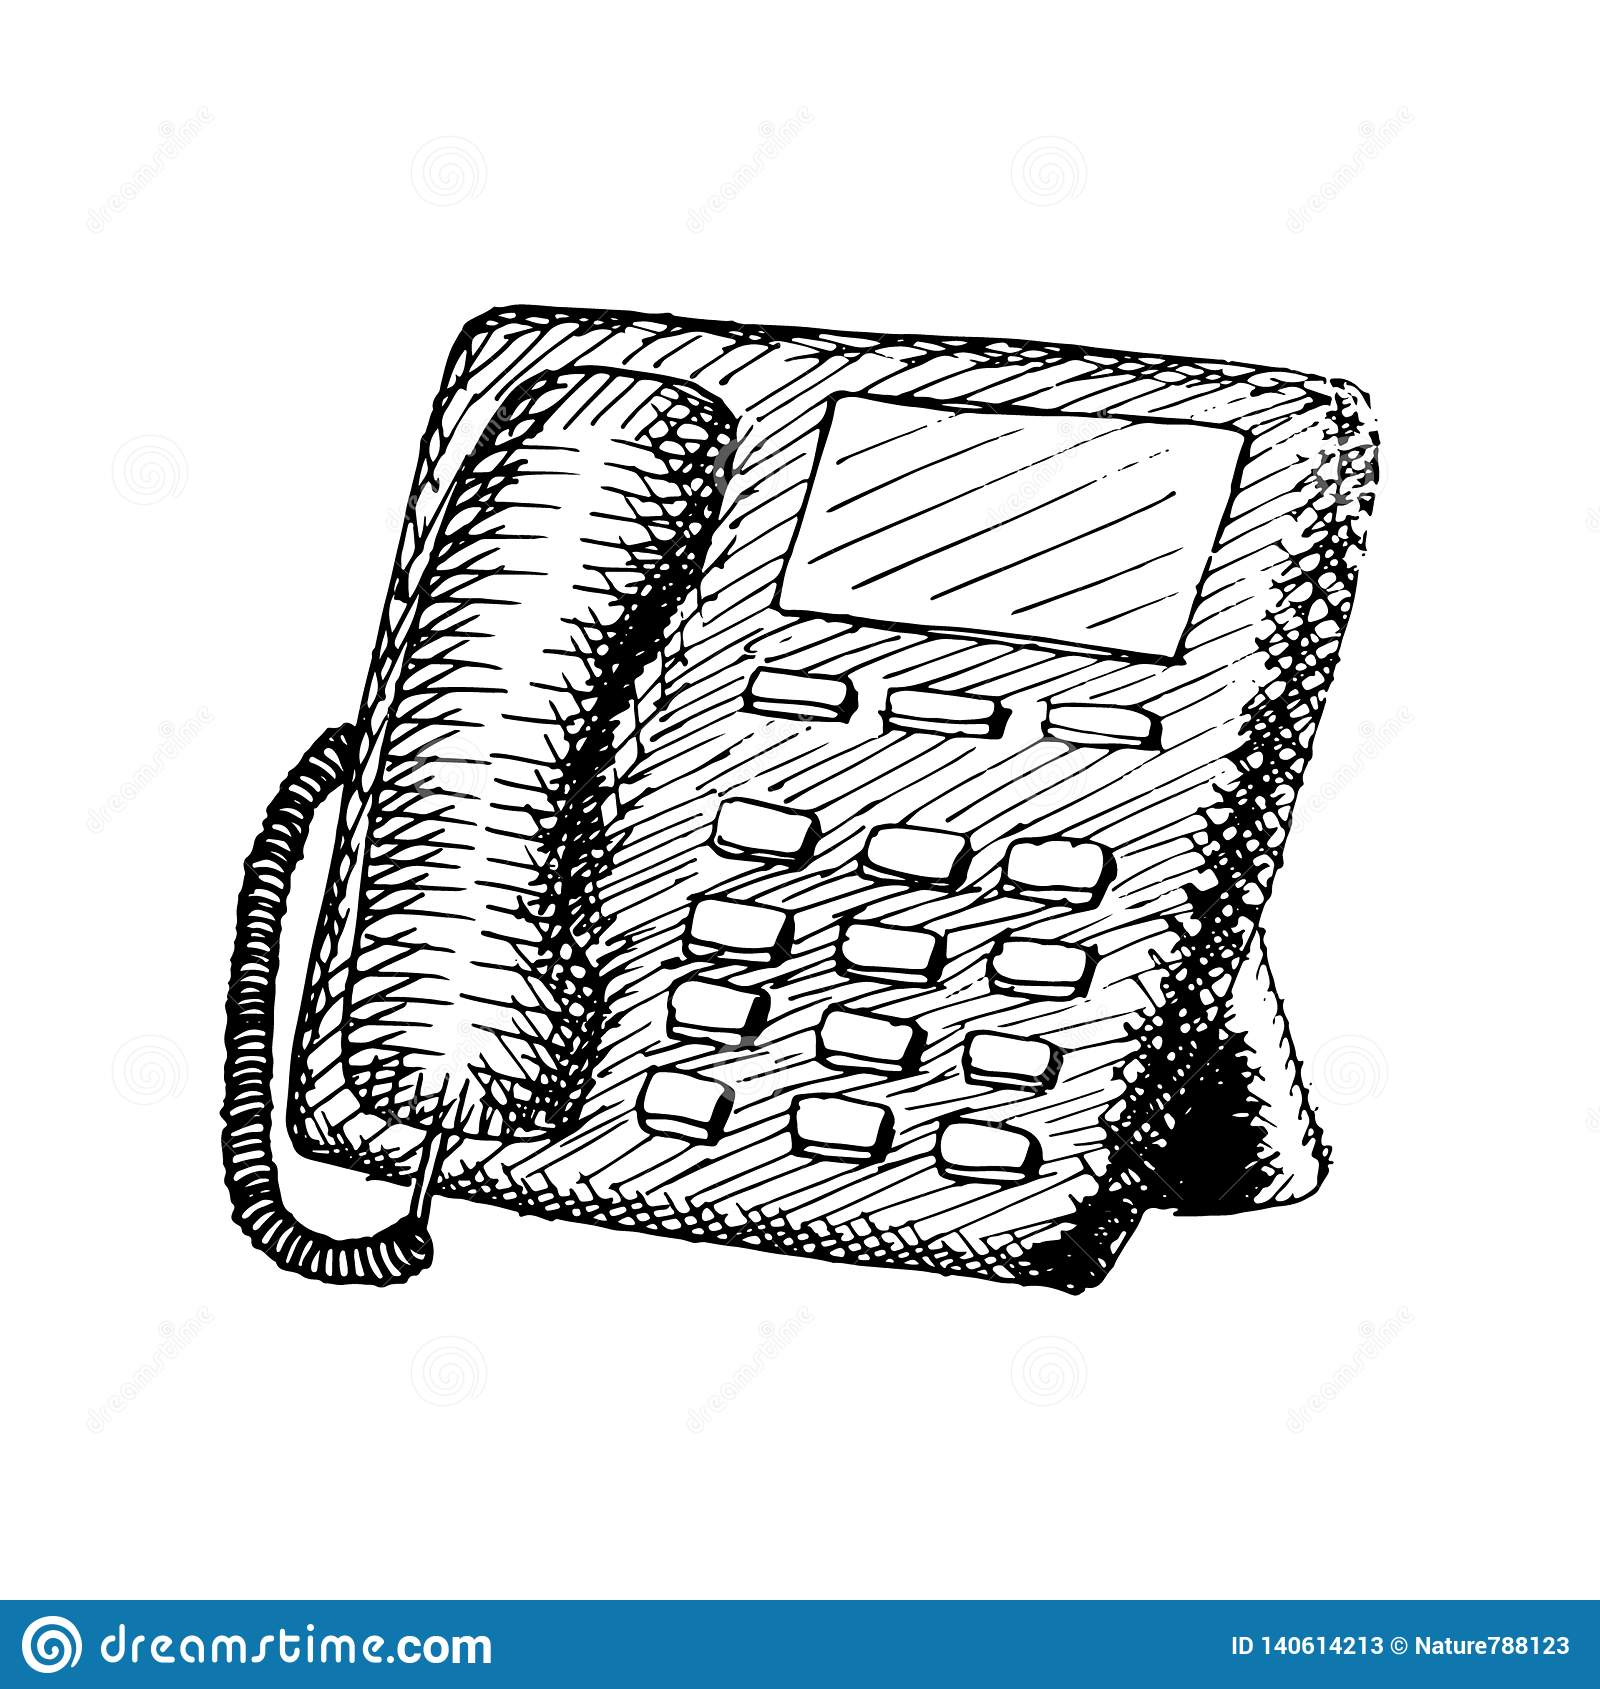 Stationary phone with buttons. vintage hand drawn illustration